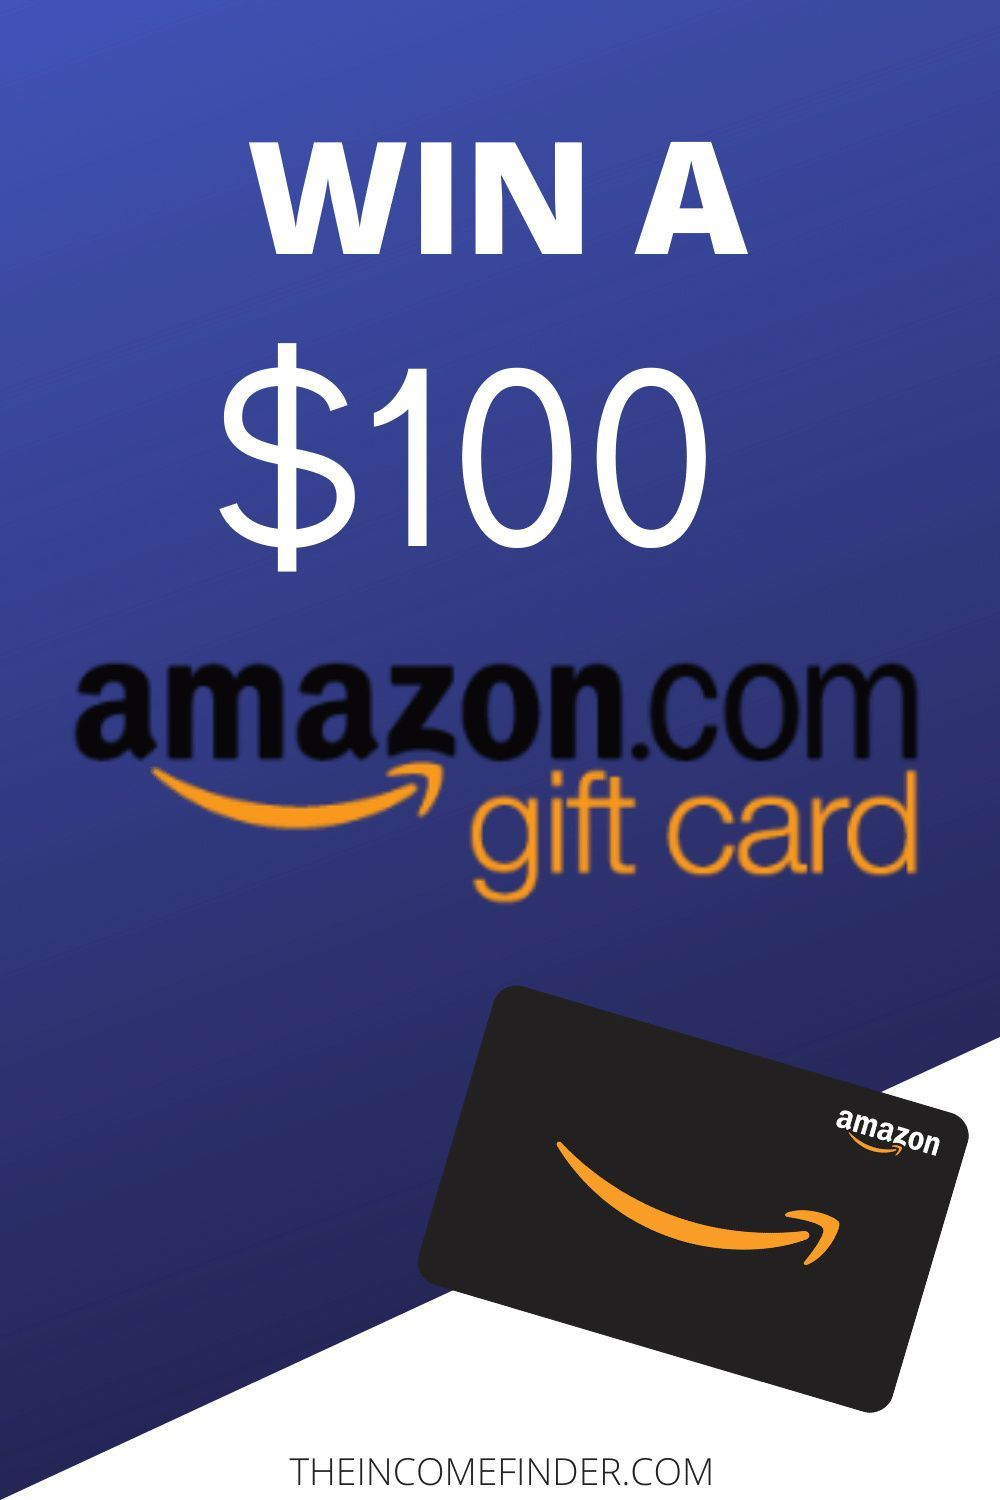 100 Gift Card Giveaway Enter To Win A 100 Amazon Gift Card Gift Card Amazon Gift Cards Amazon Gifts